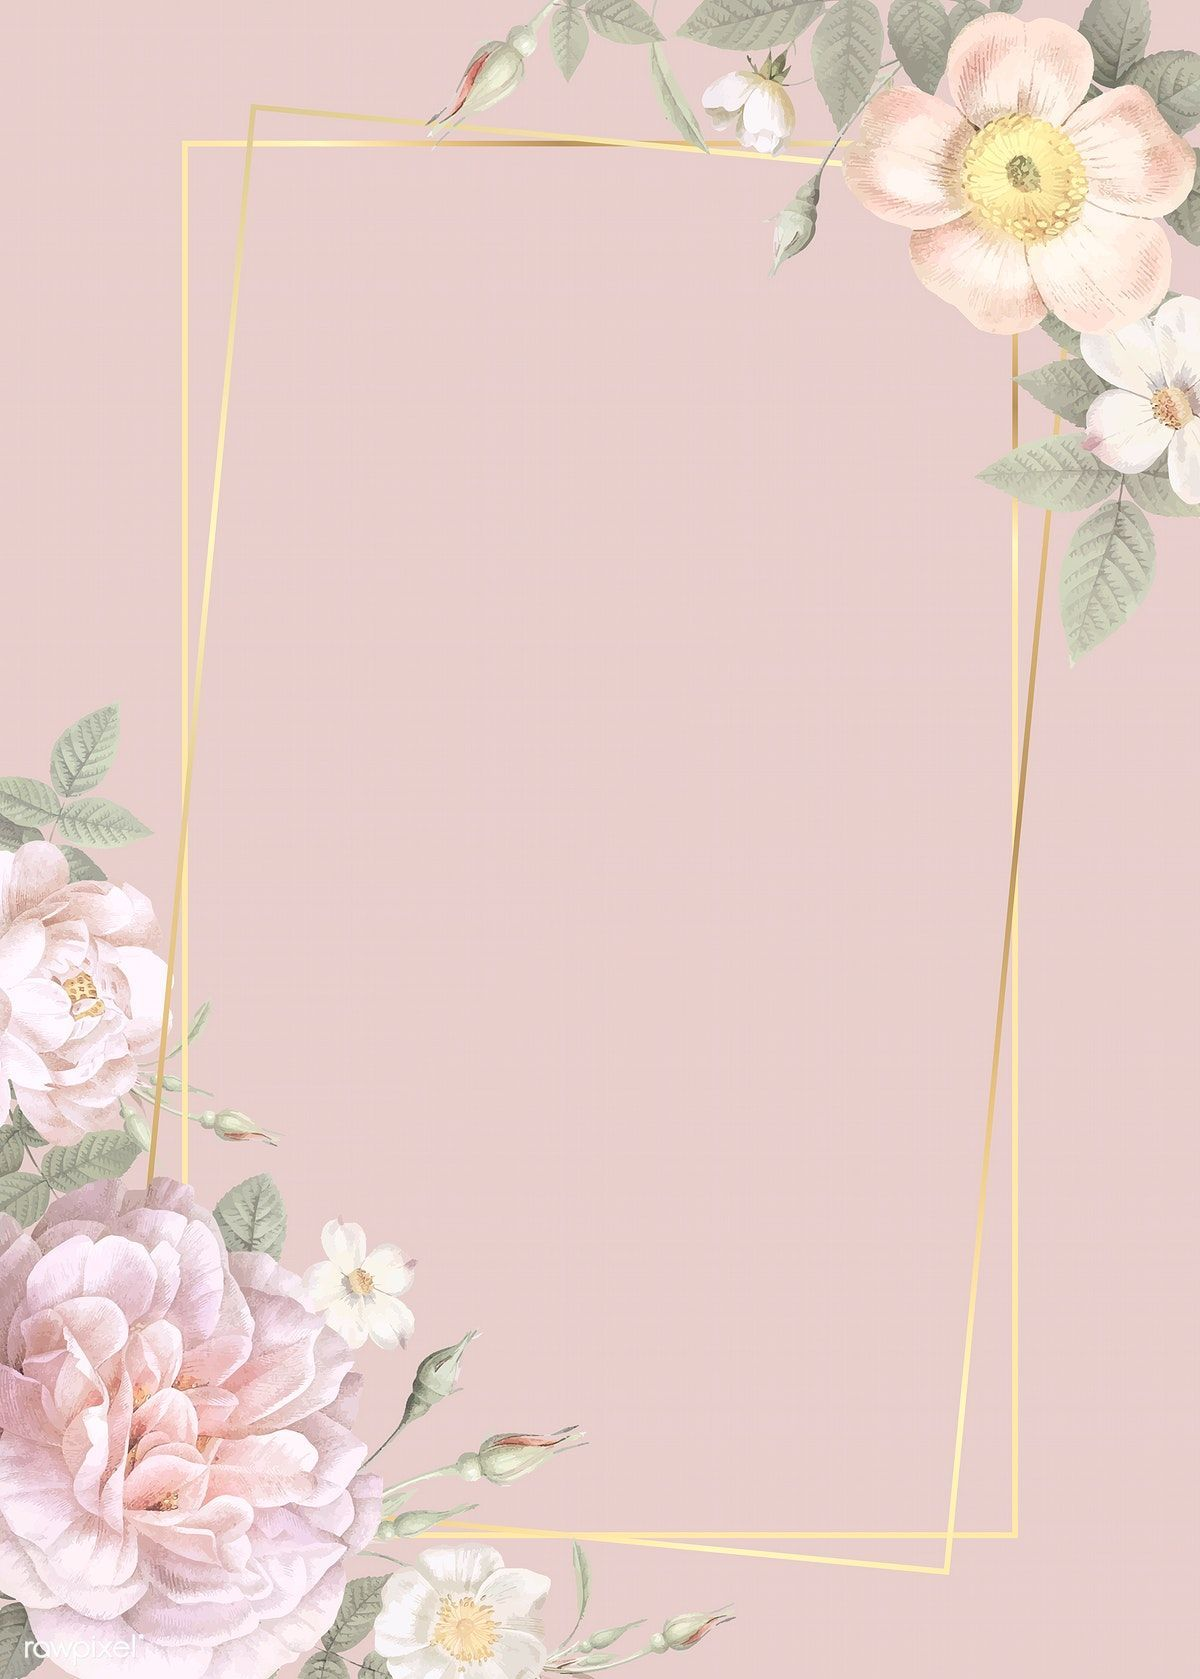 Download Premium Illustration Of Hand Drawn Floral Rectangle Gold